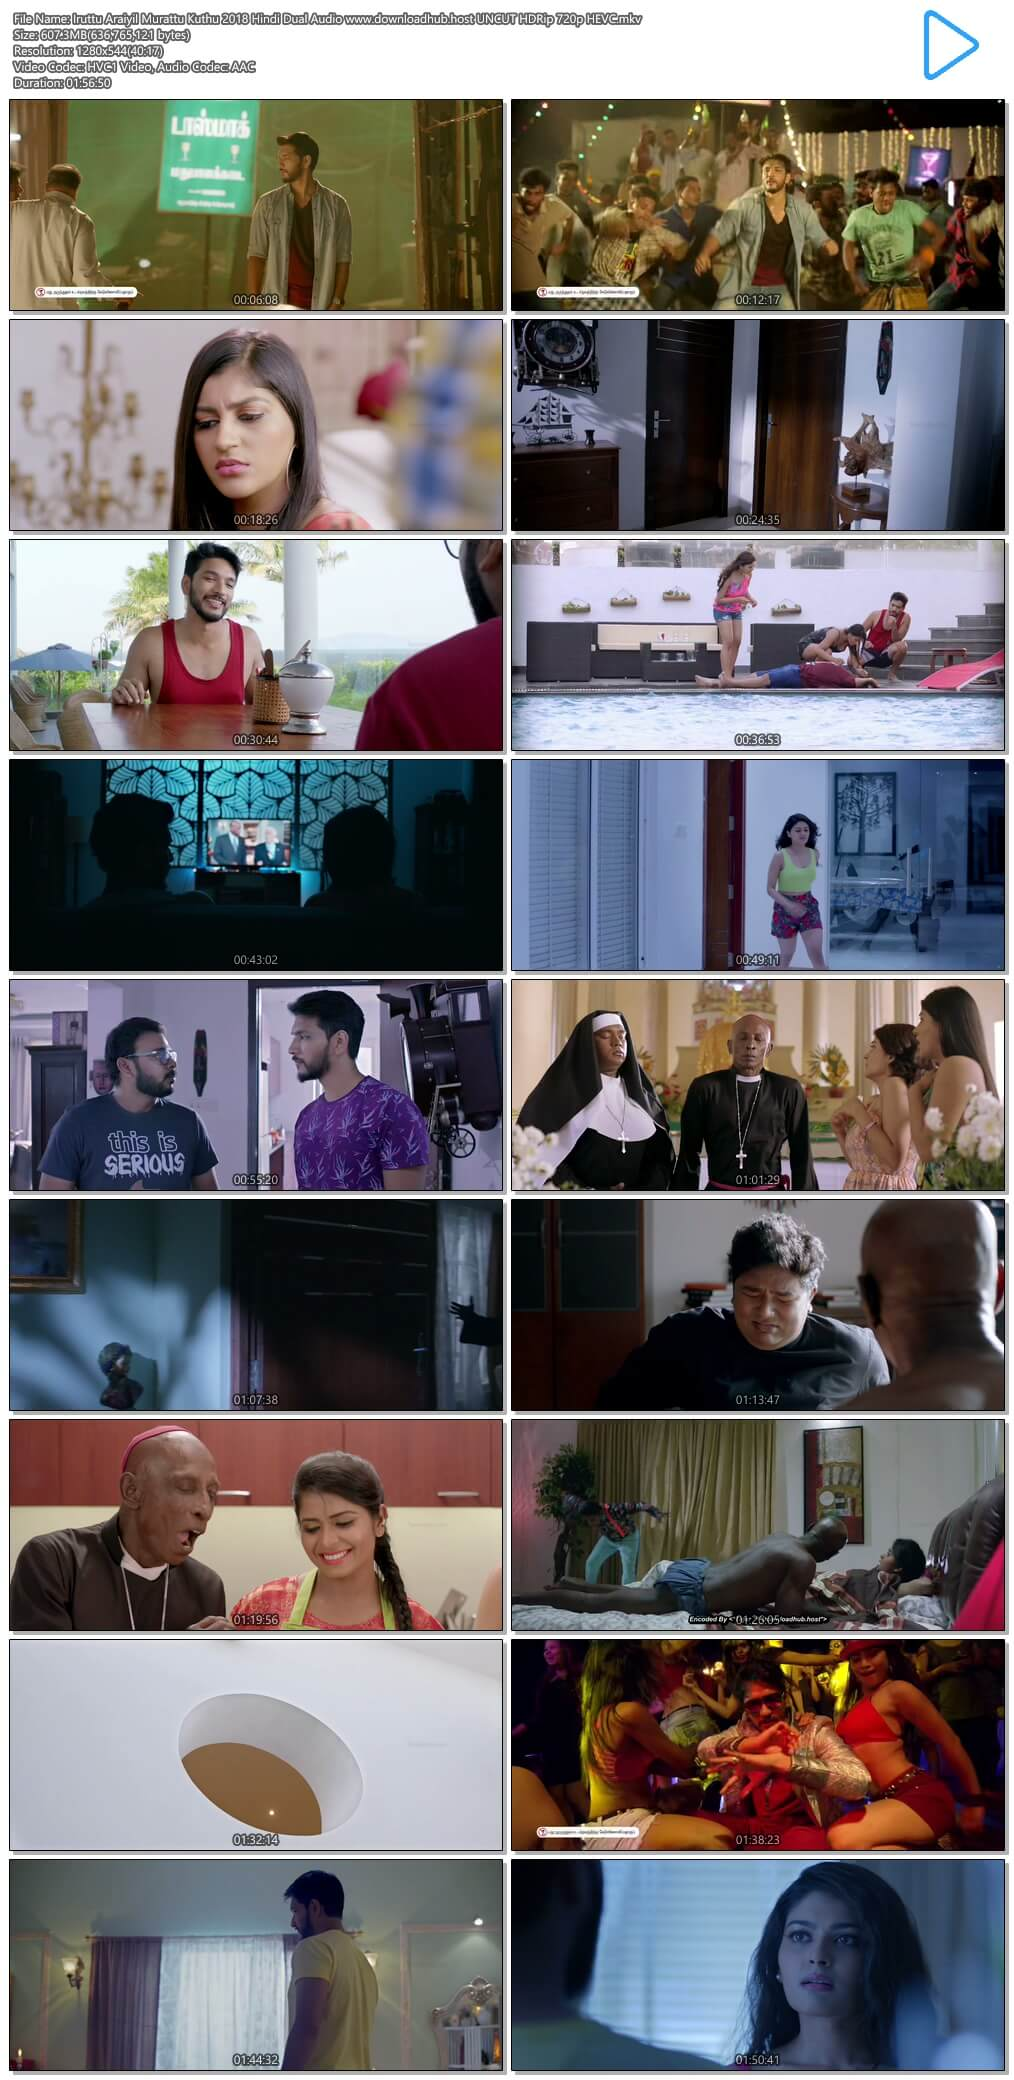 Iruttu Araiyil Murattu Kuthu 2018 Hindi Dual Audio 600MB UNCUT HDRip 720p HEVC